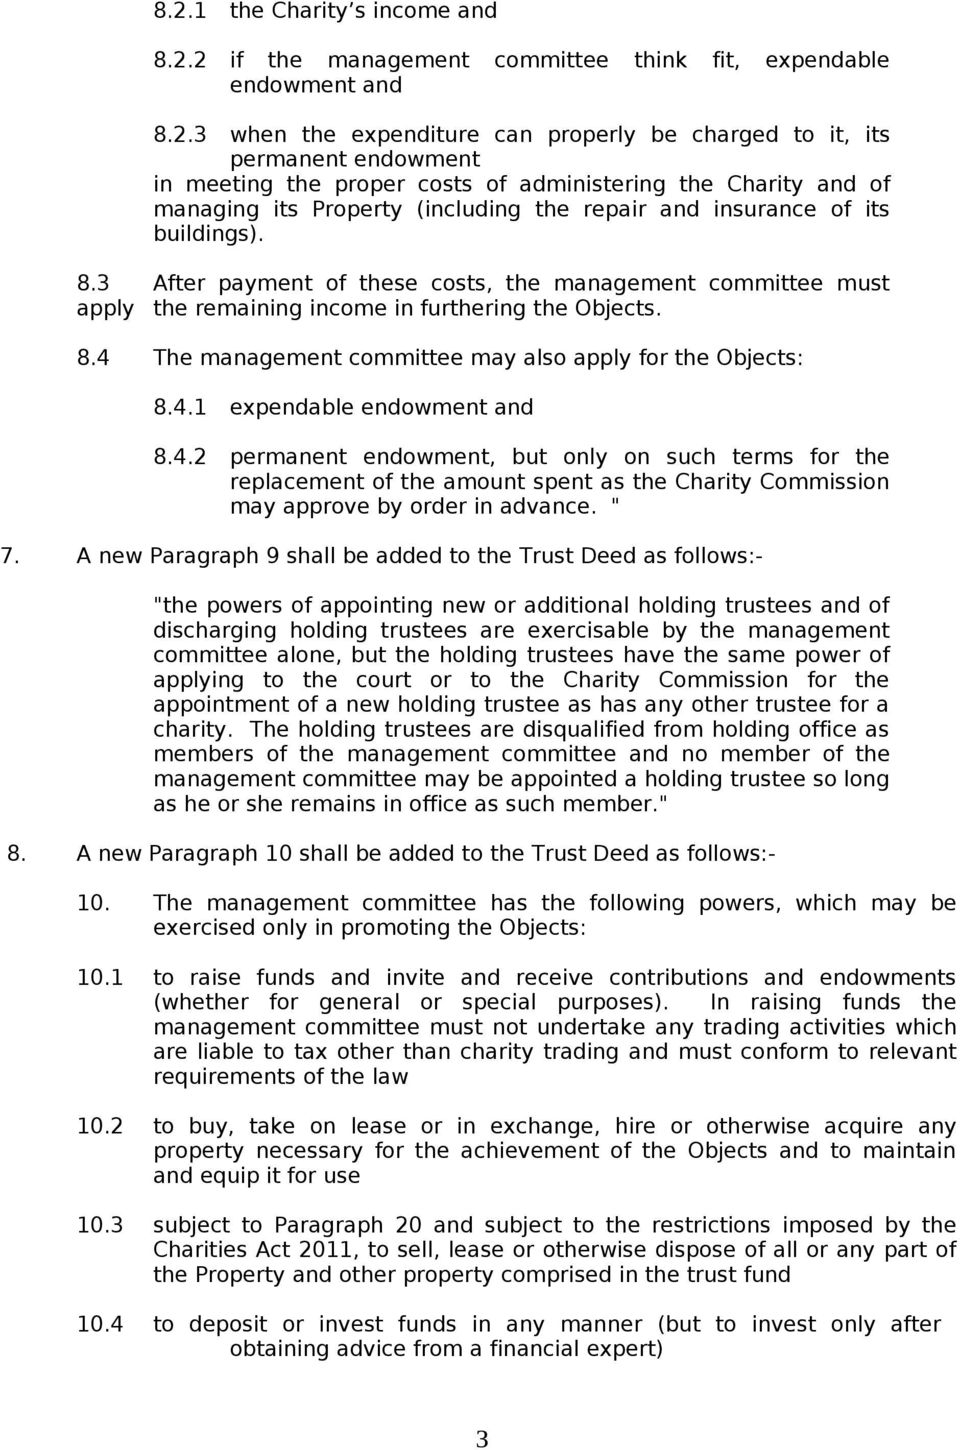 3 After payment of these costs, the management committee must apply the remaining income in furthering the Objects. 8.4 The management committee may also apply for the Objects: 8.4.1 expendable endowment and 8.